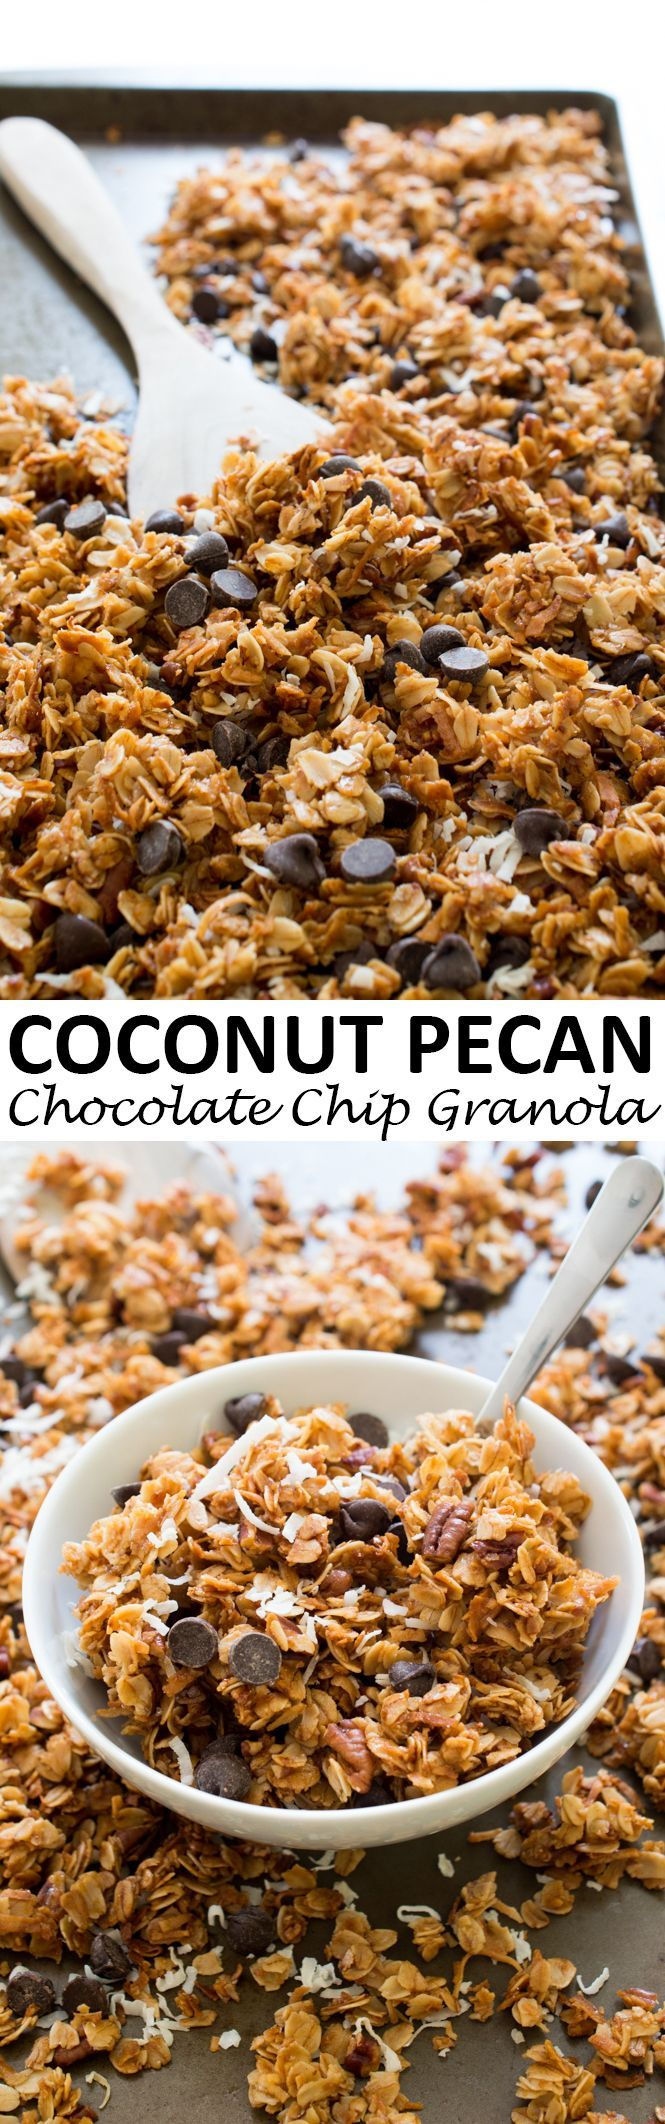 5 Ingredient Coconut Pecan Chocolate Chip Granola. Great for breakfast or as a snack. So much better than store-bought! | chefsavvy.com #recipe #granola #pecan #breakfast #snack